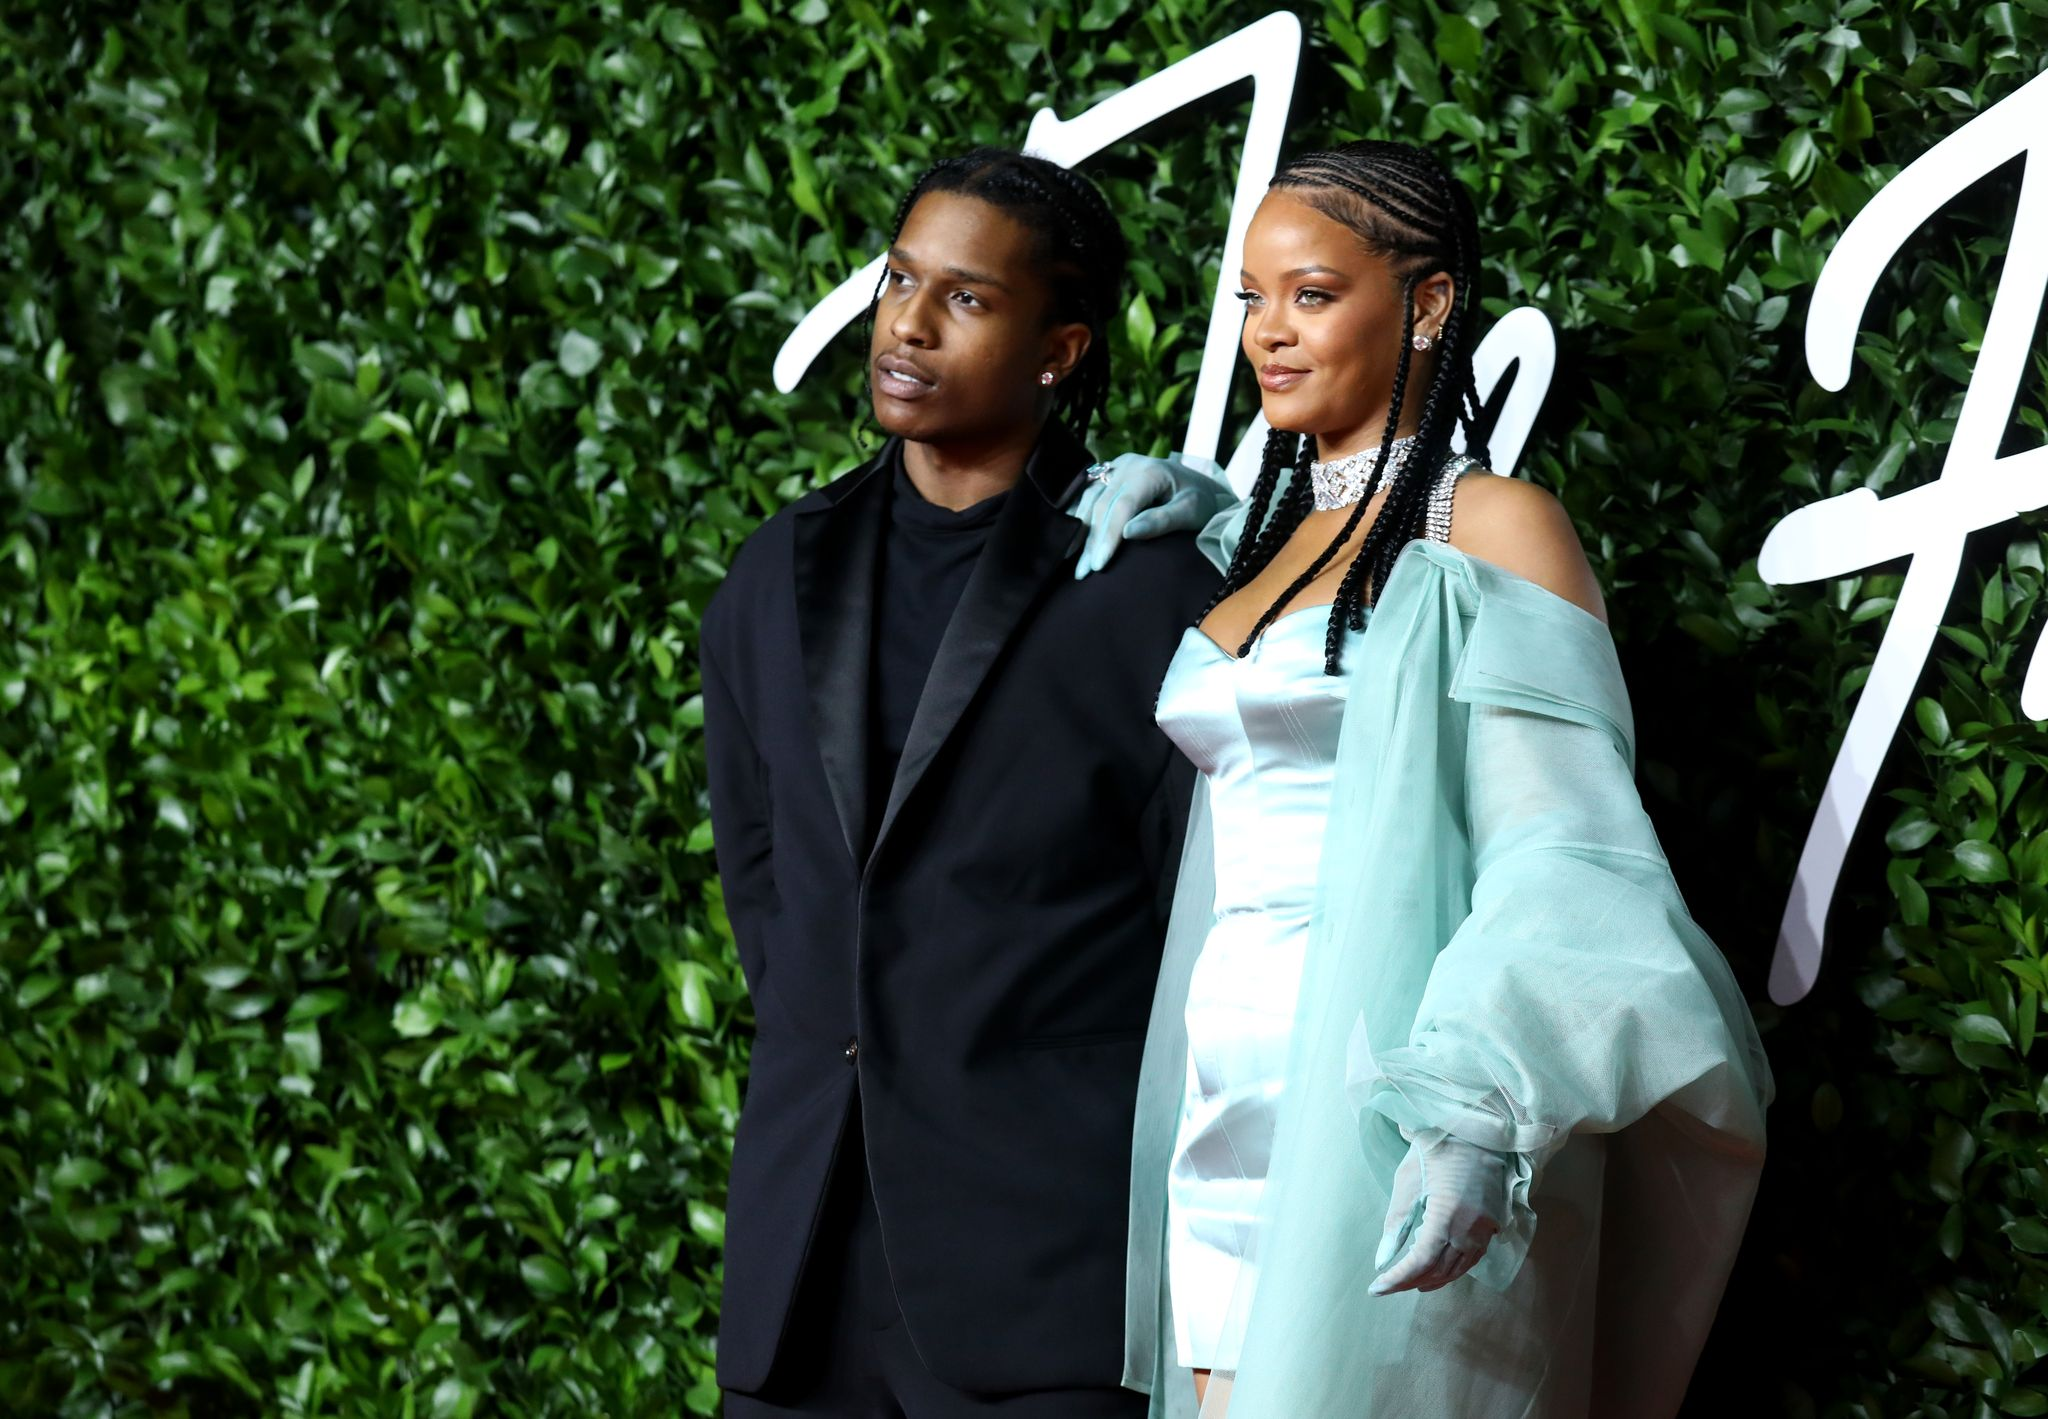 Rihanna and A$AP Rocky at The Fashion Awards in 2019 in London, England. | Source: Getty Images